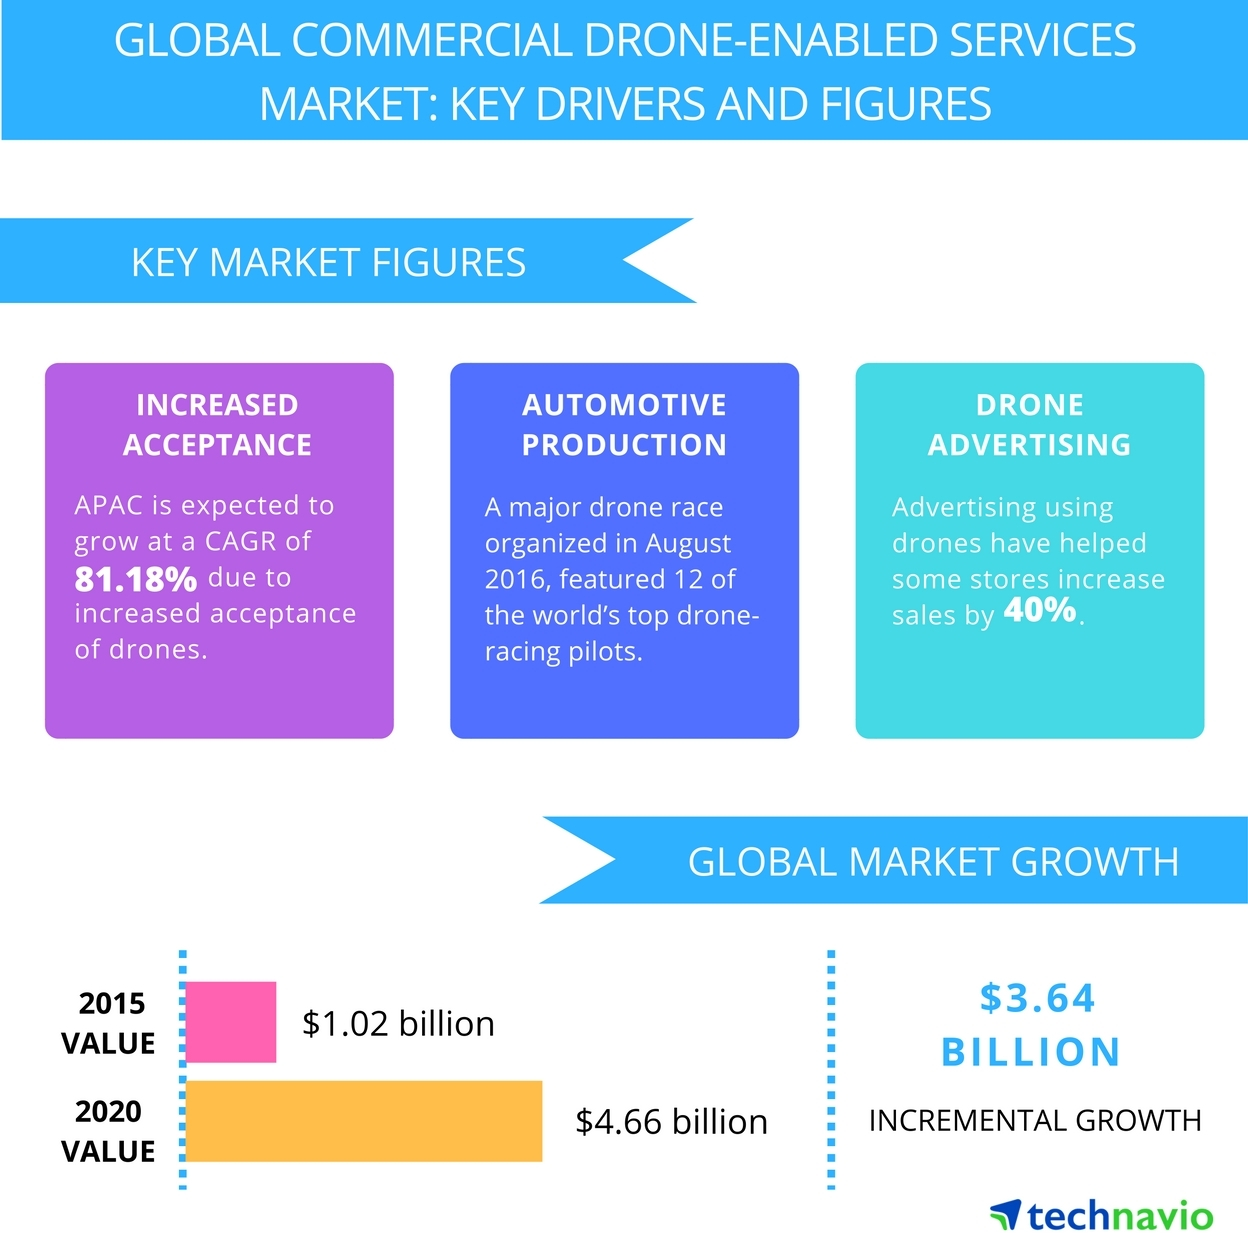 Top 7 Vendors in the Commercial Drone-enabled Services Market from